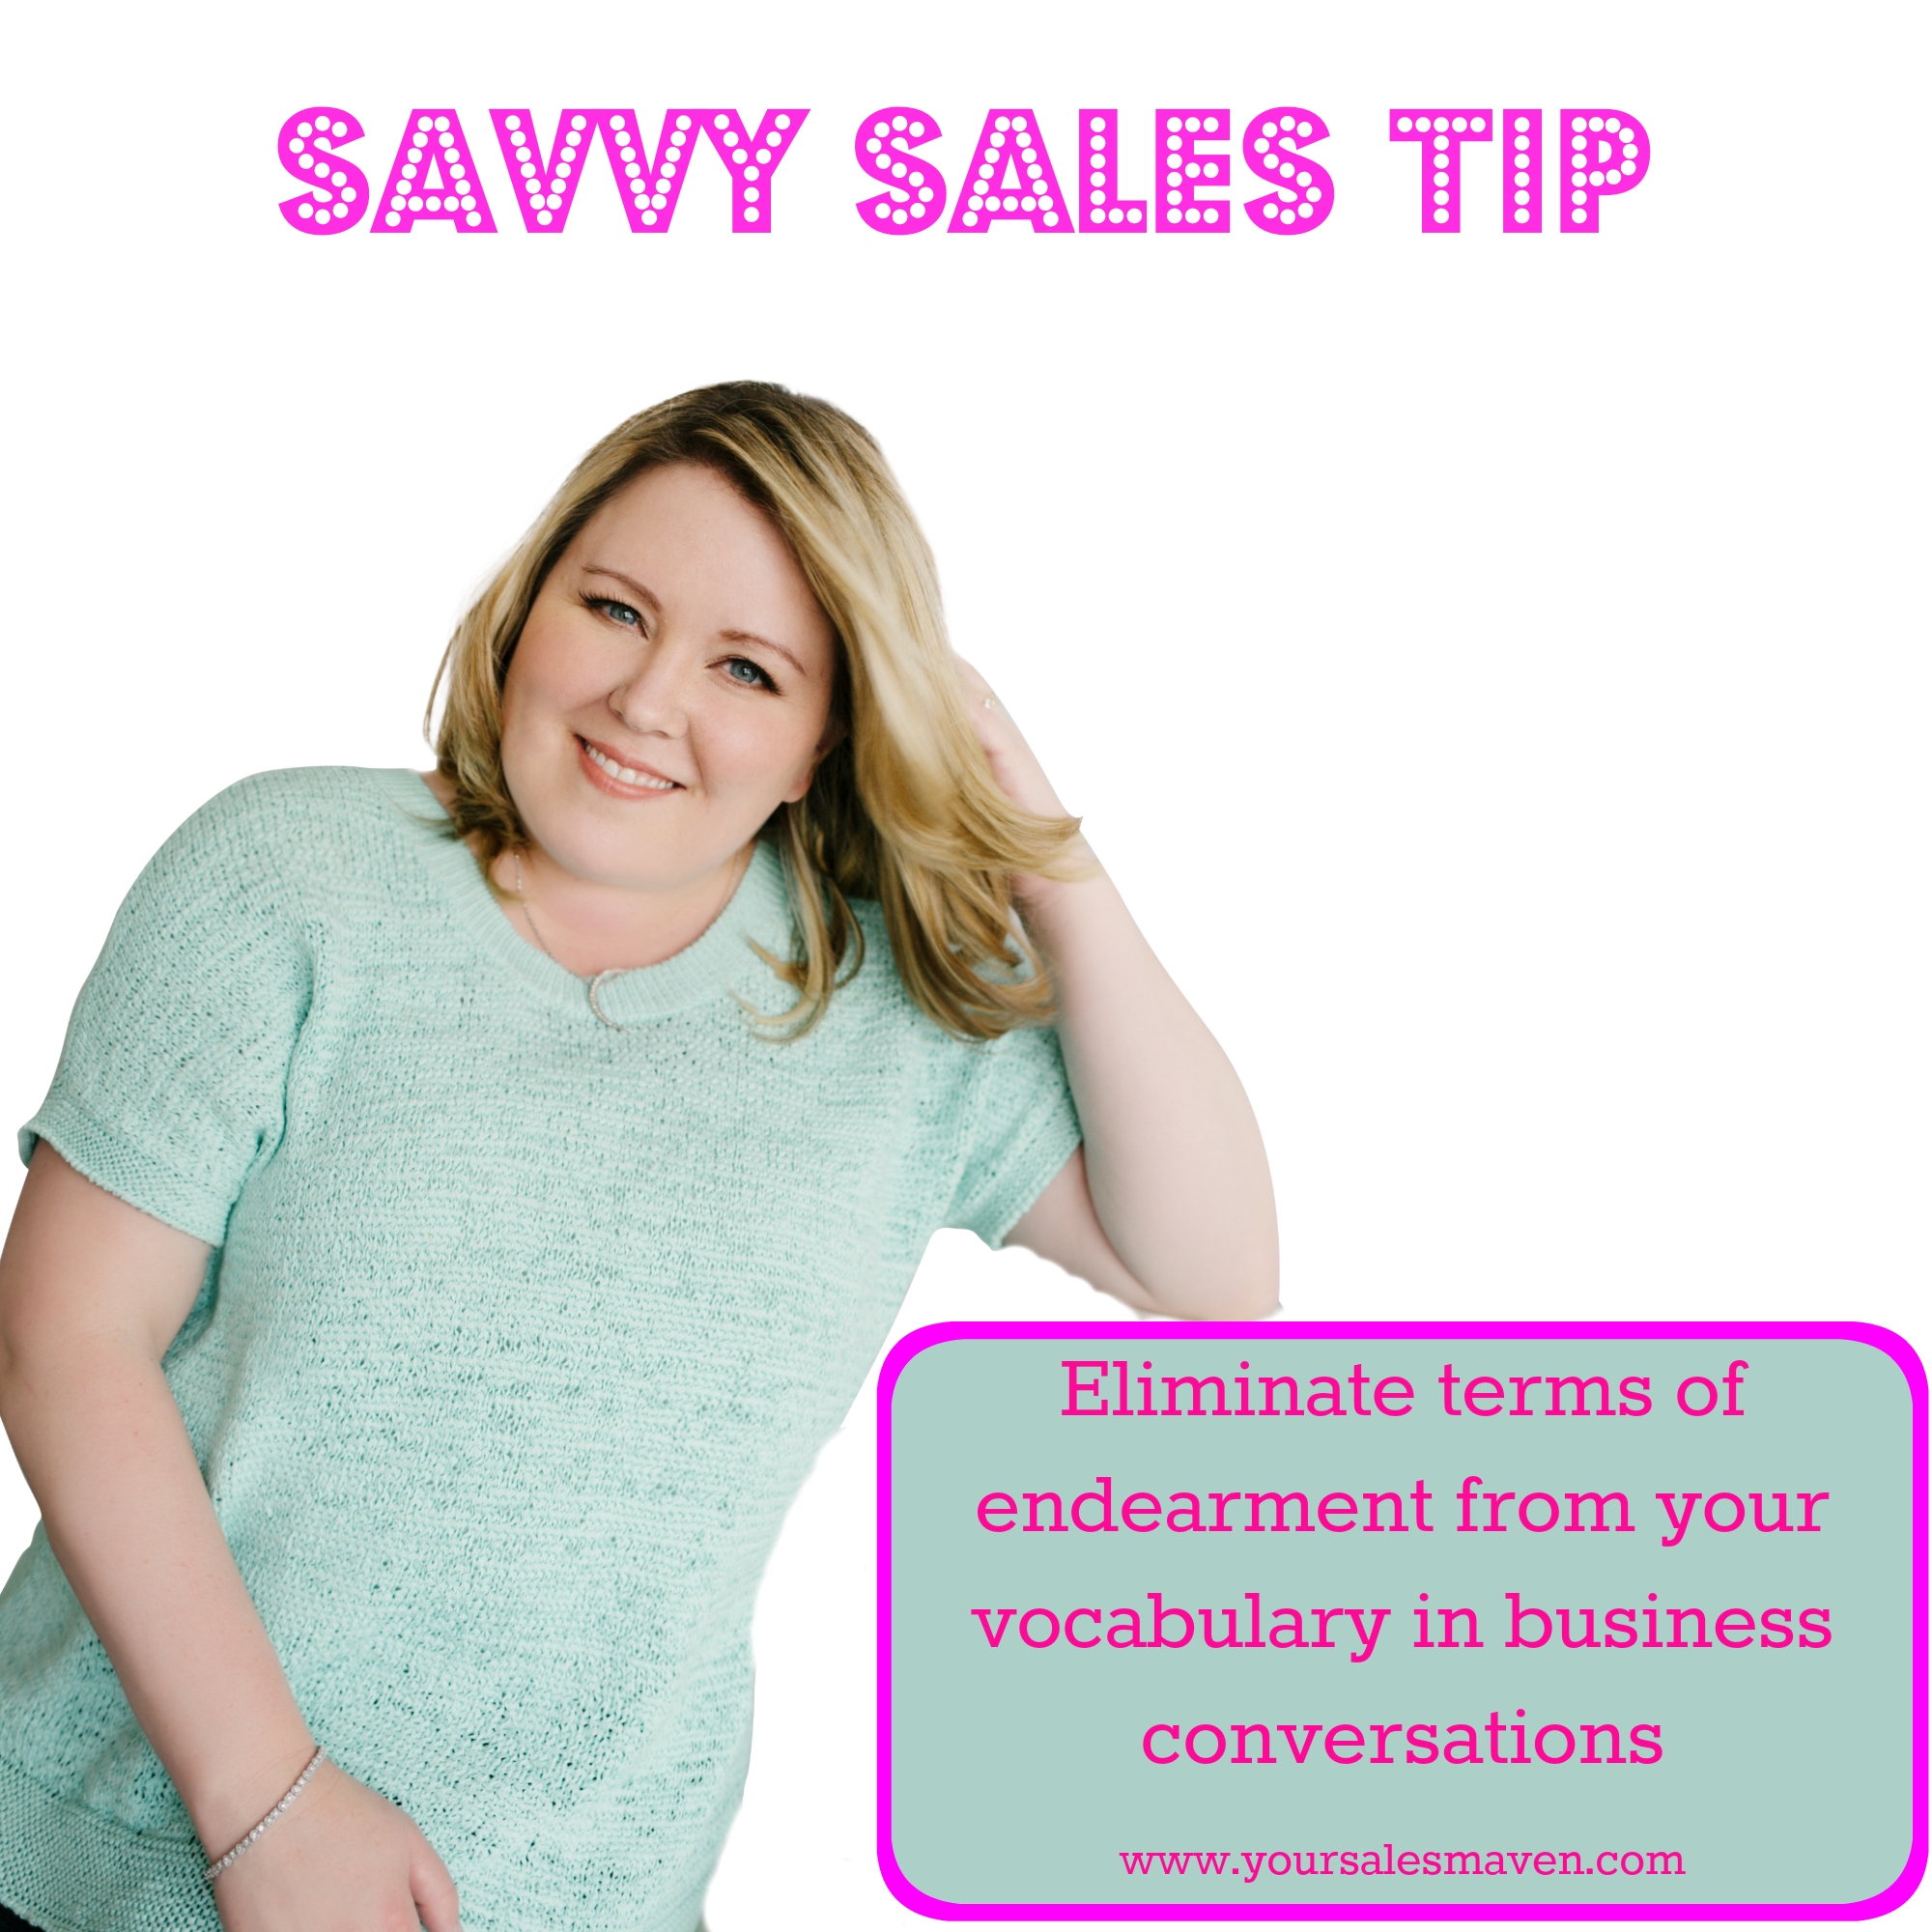 Savvy Sales Tip - Terms of Endearment